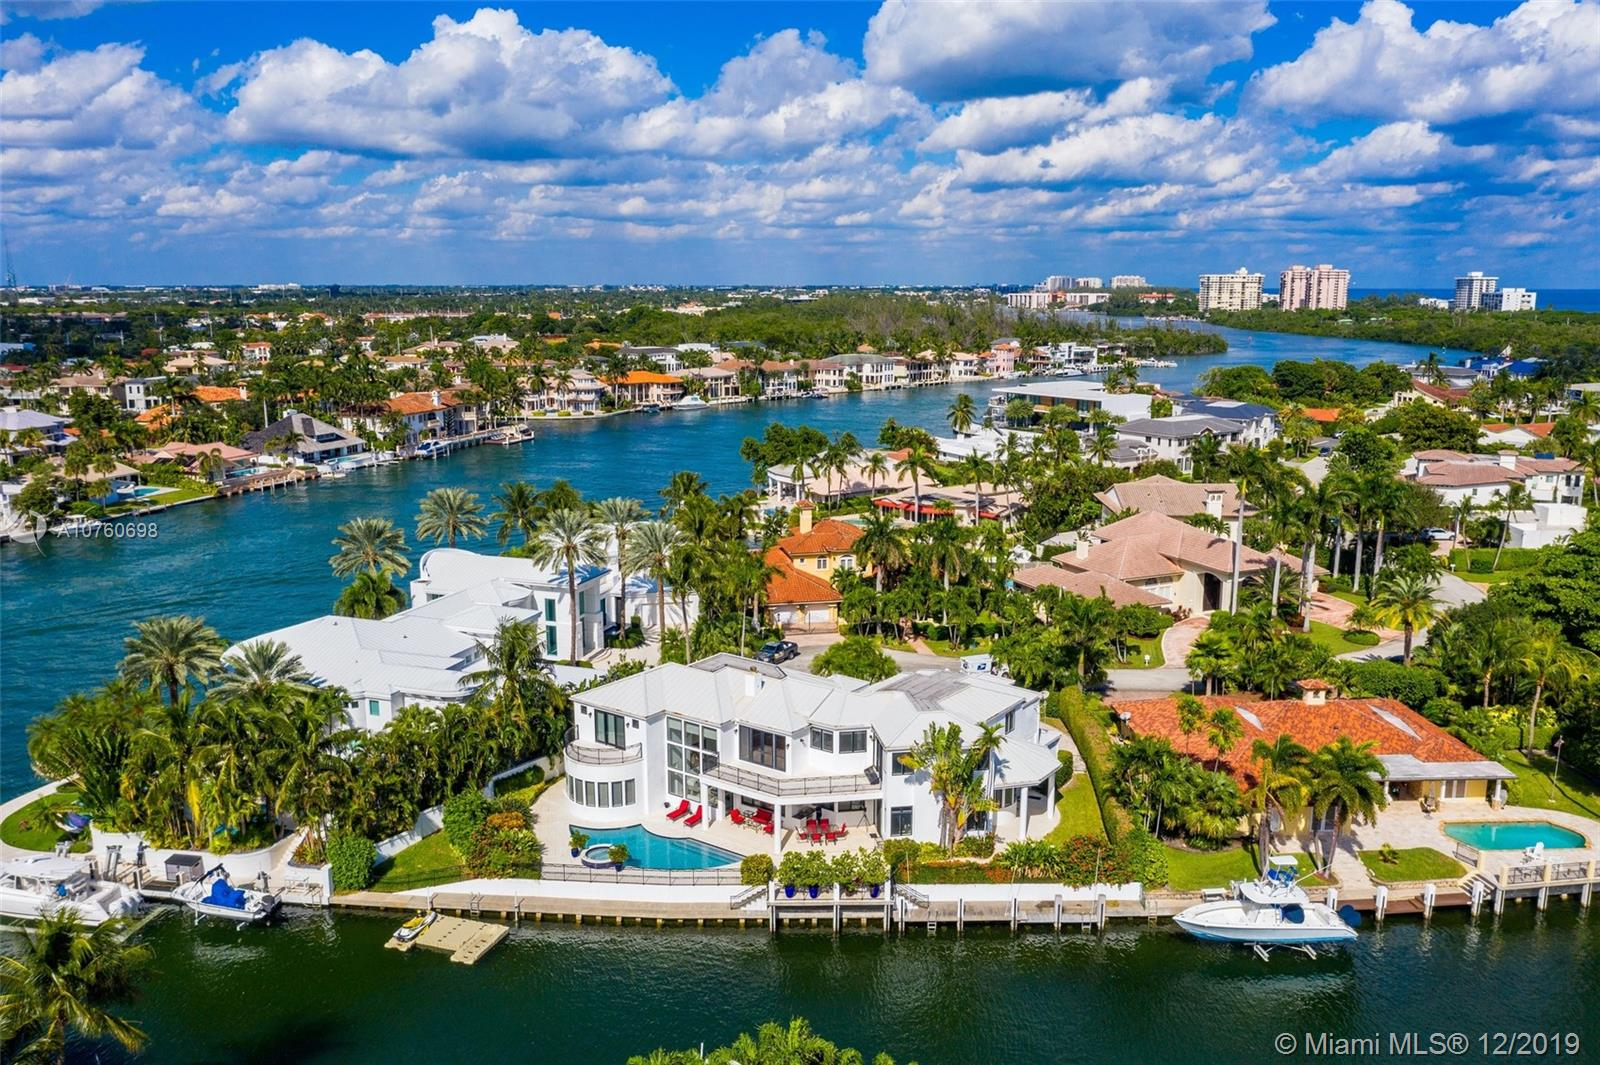 708 Coquina Way - Boca Raton, Florida